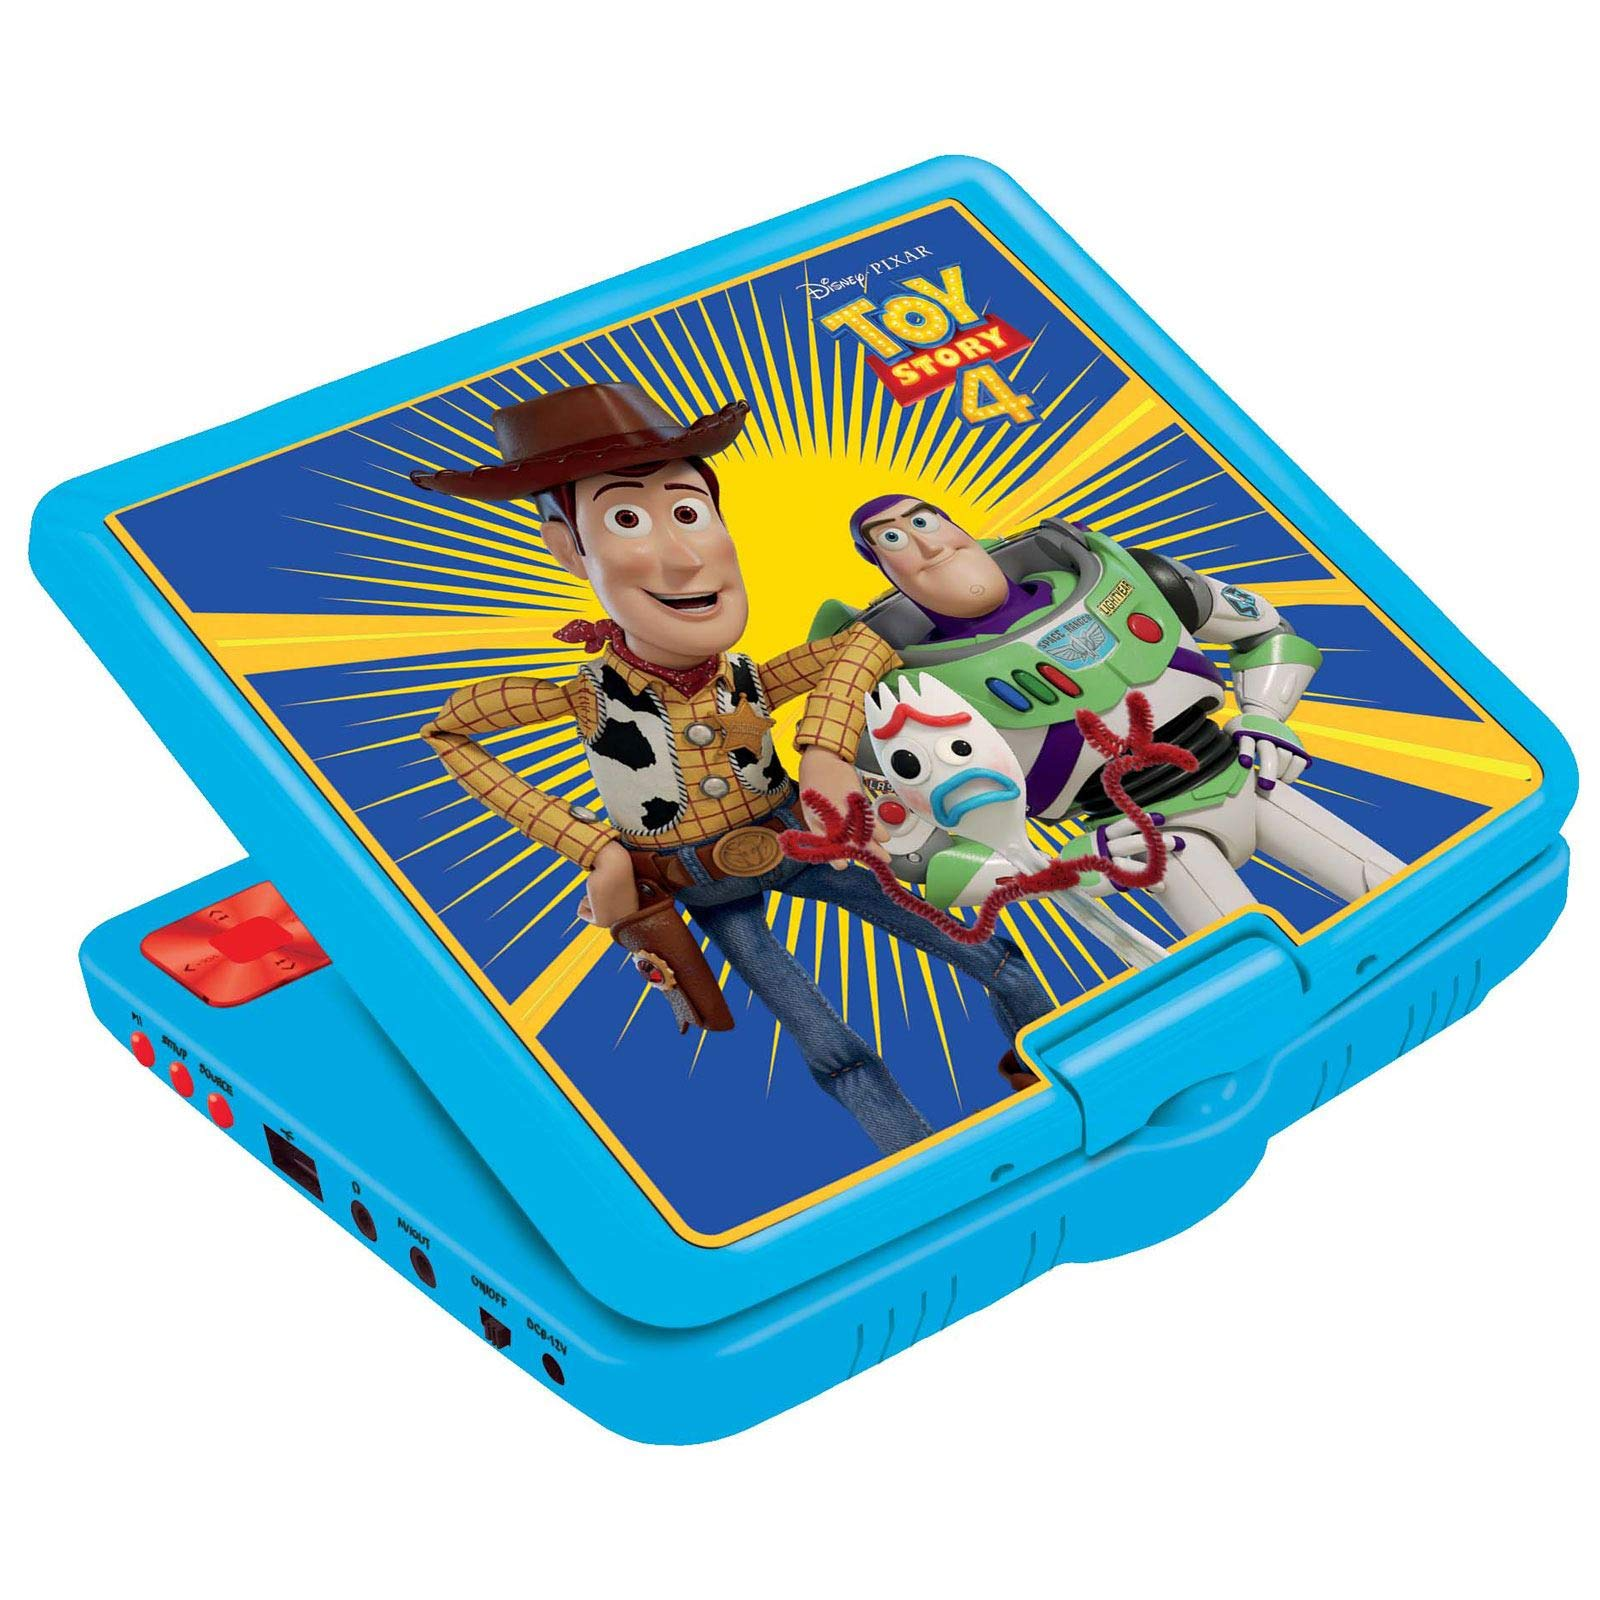 Toy Story 4 Portable DVD Player by Toy Story (Image #4)